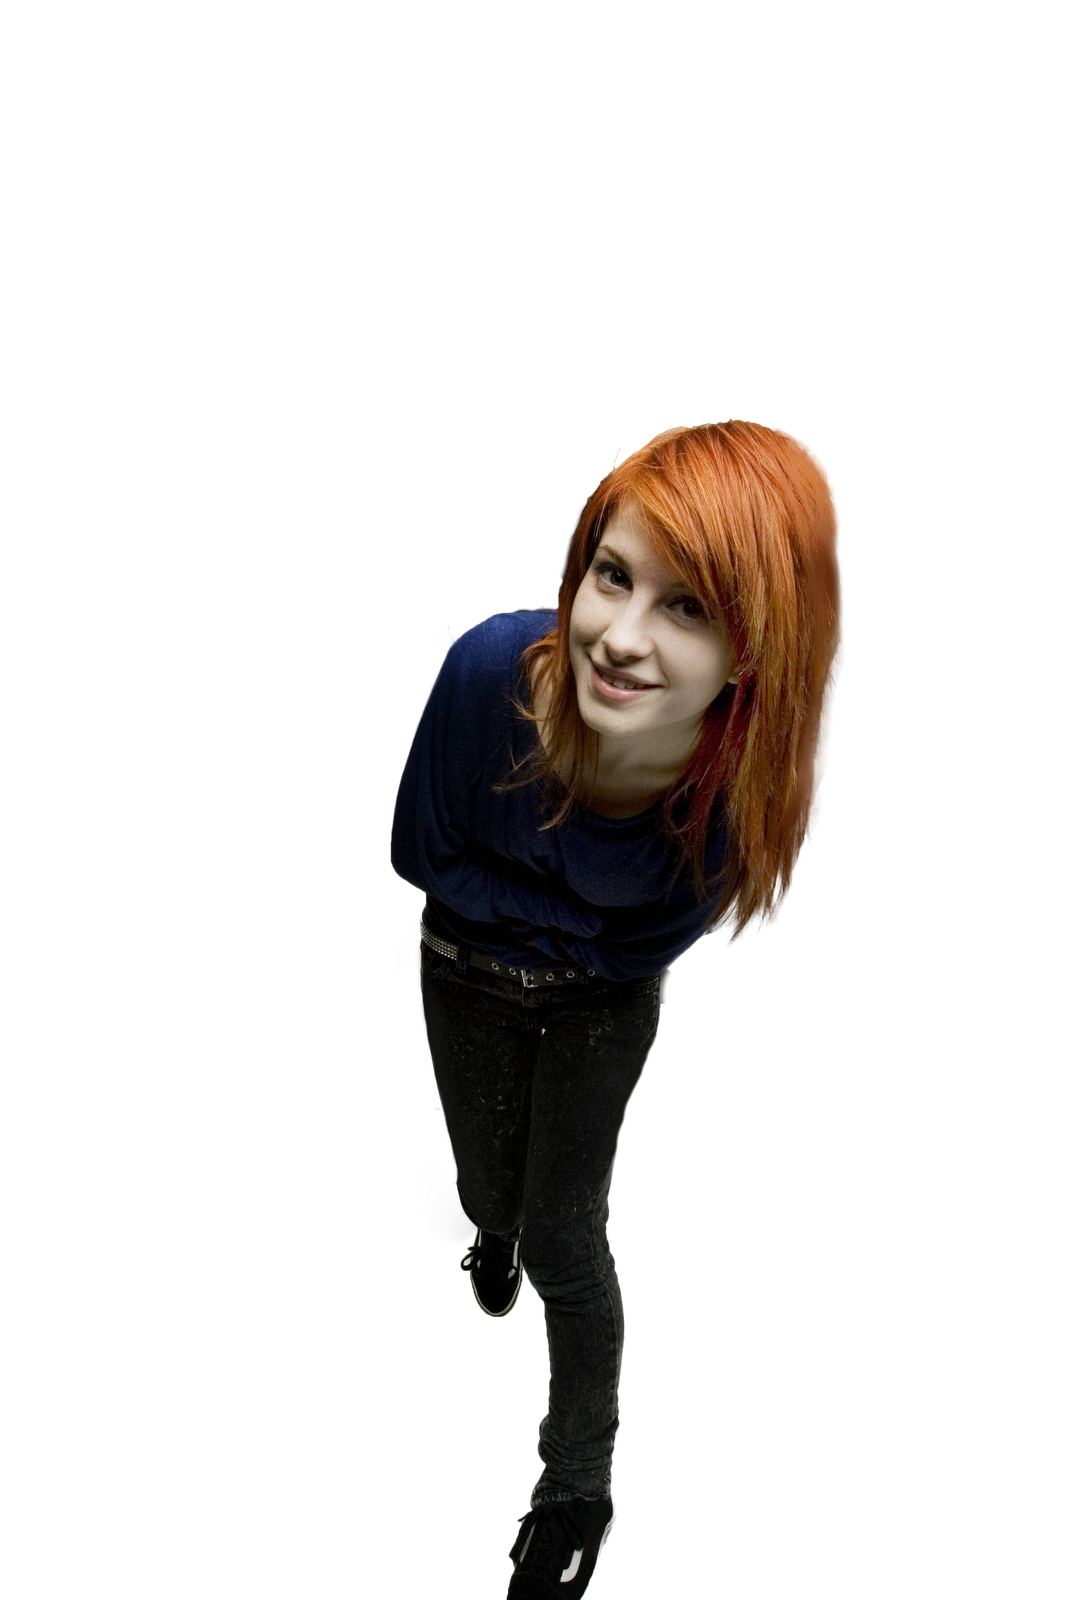 Sing drawing hayley williams. Png official photo album